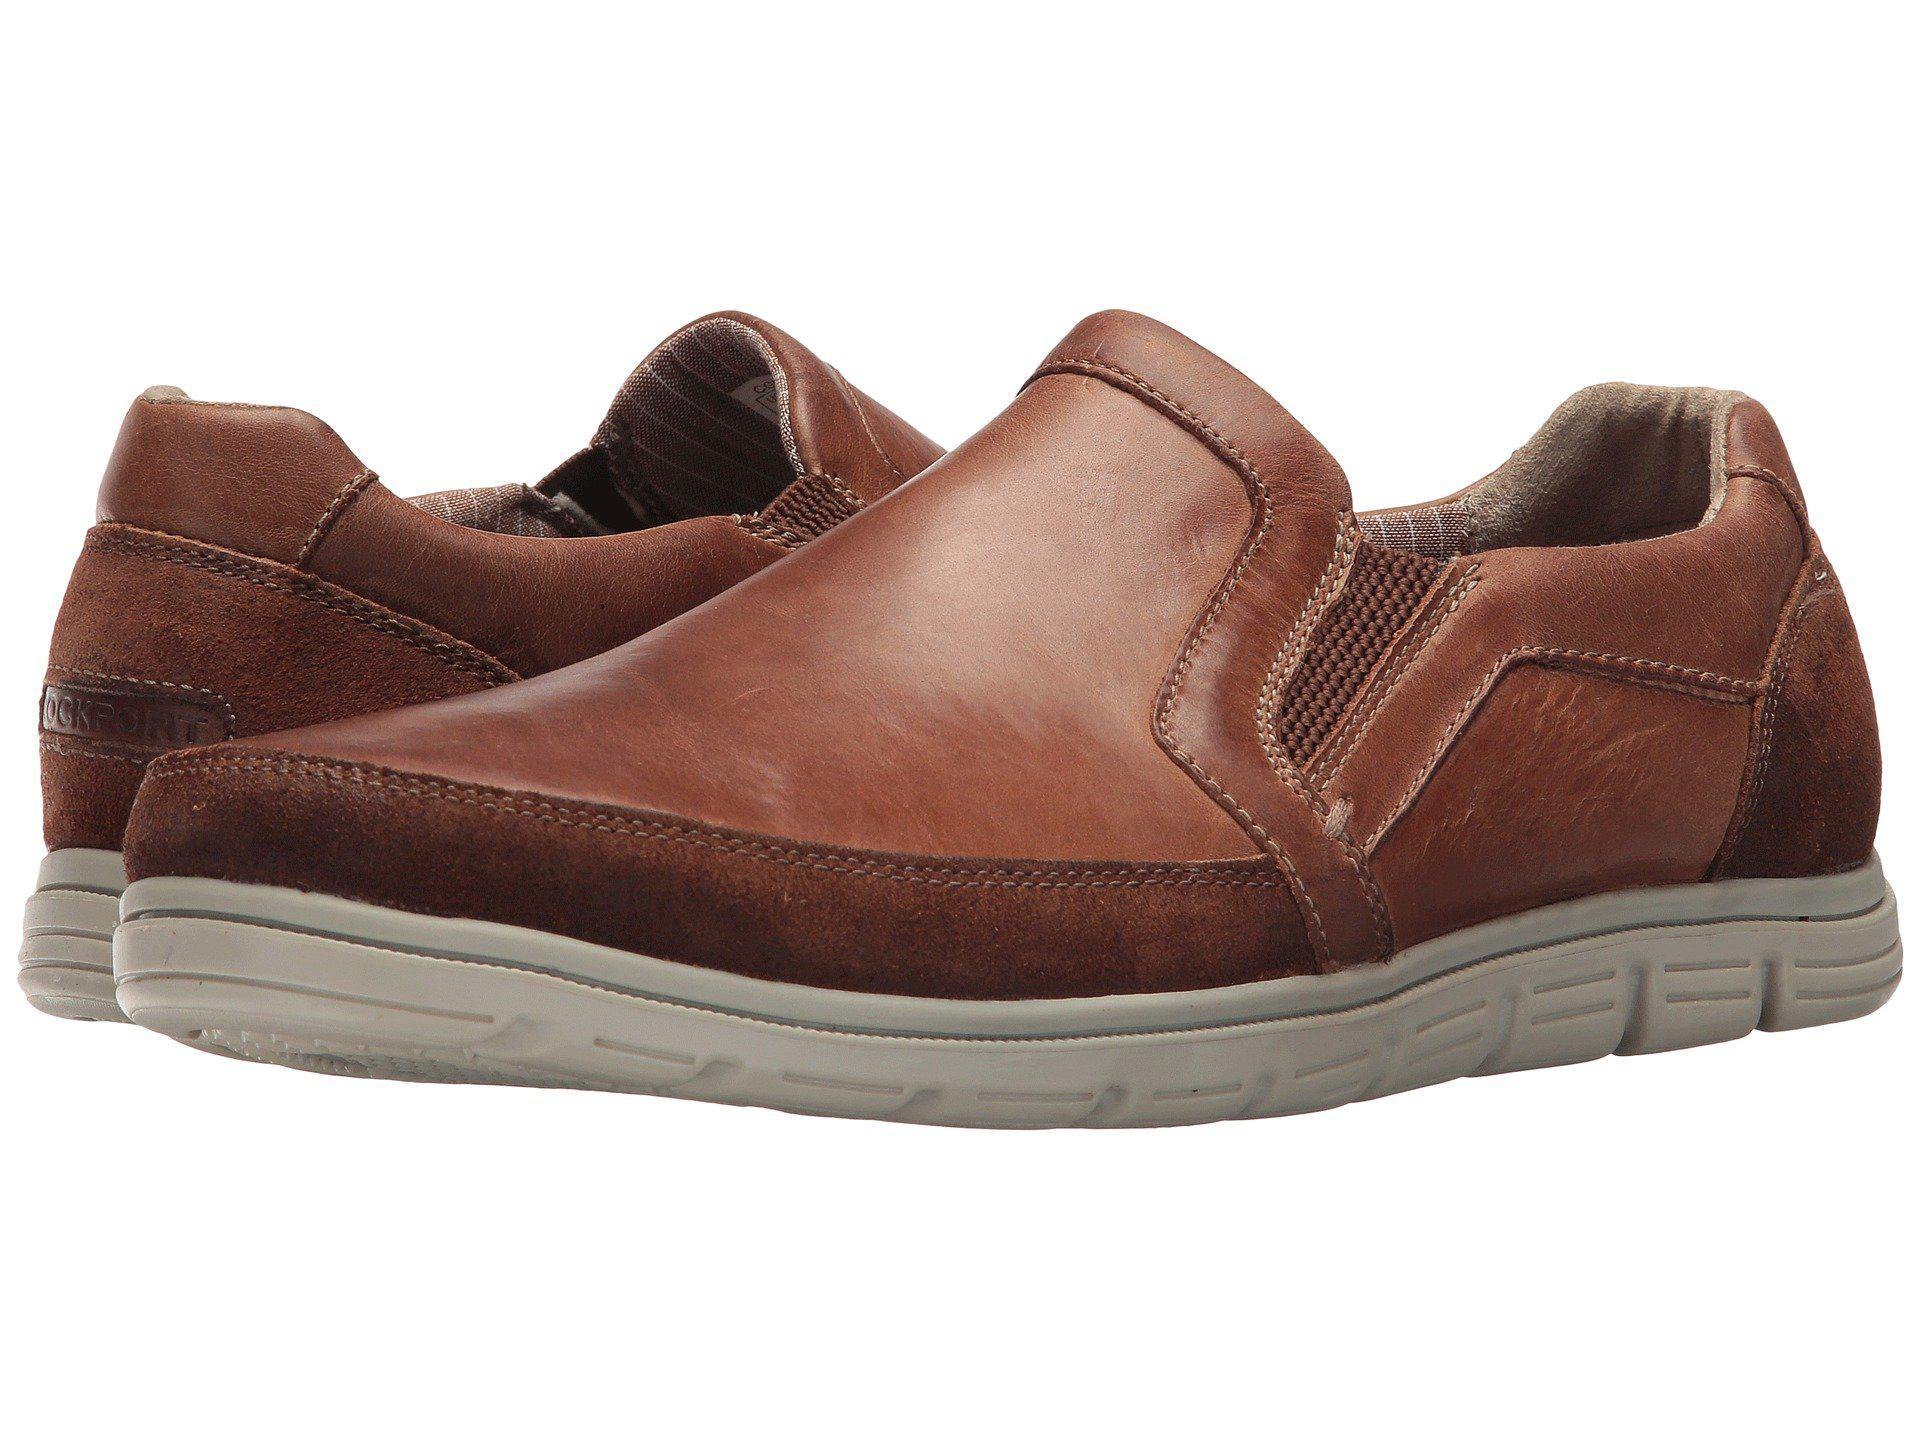 Bowman Double Gore Slip-On Rockport